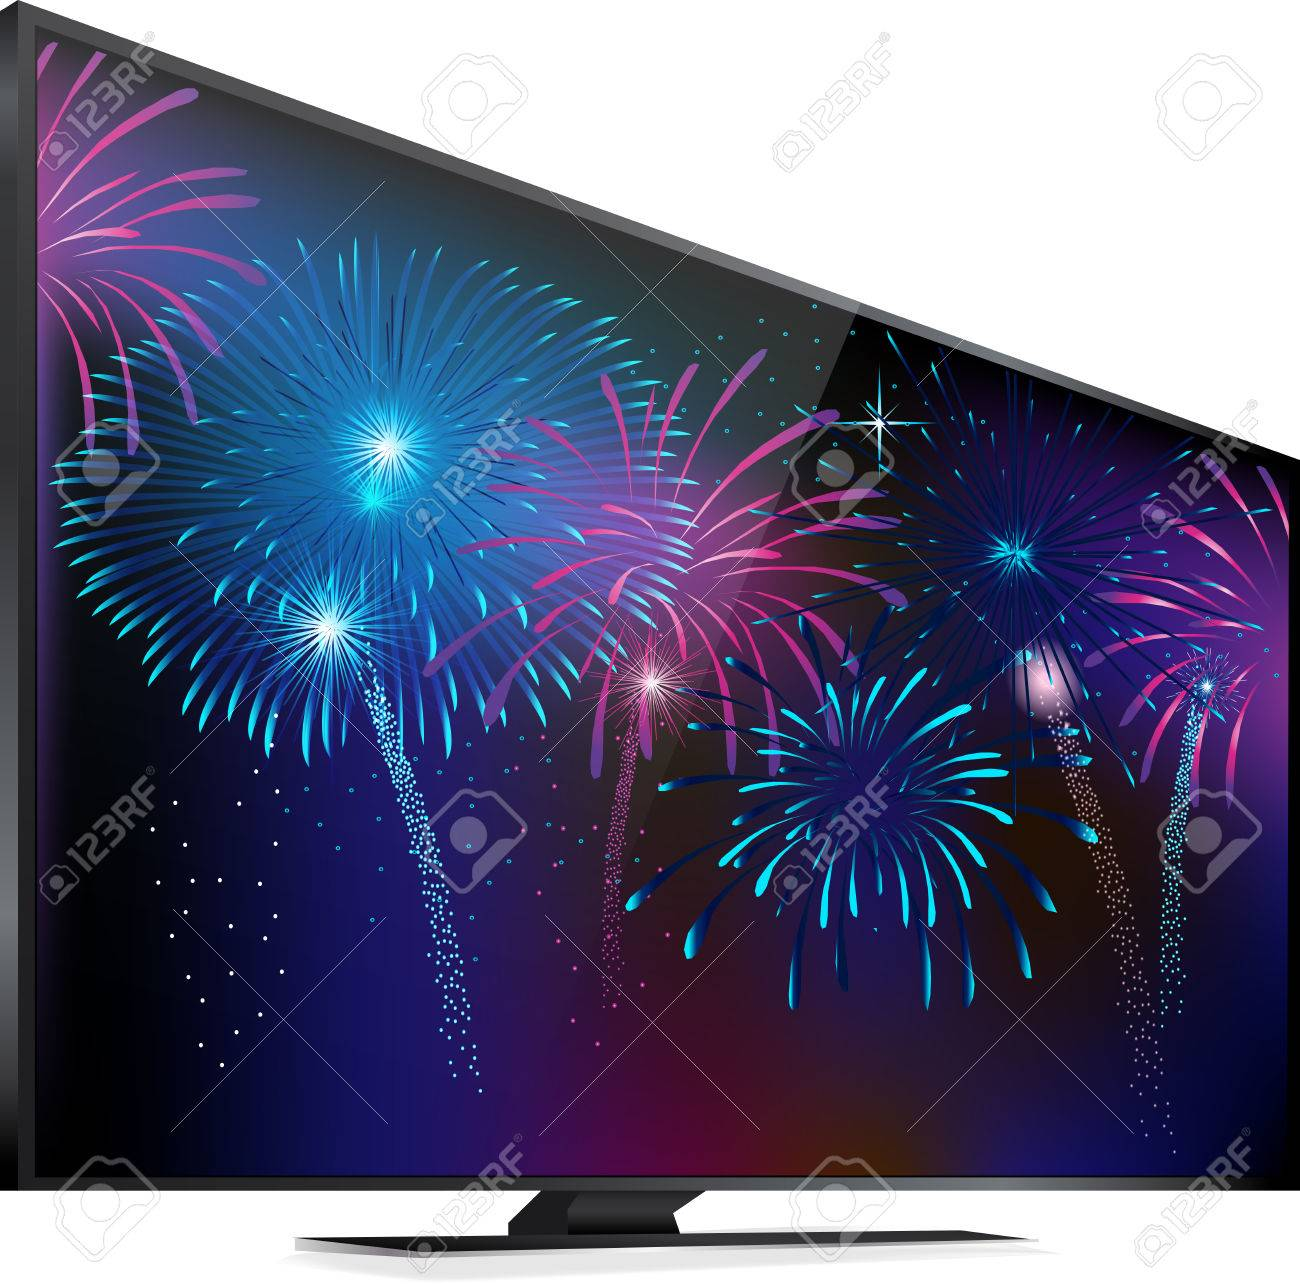 Fireworks lighting up the sky Smart TV screen with fireworks